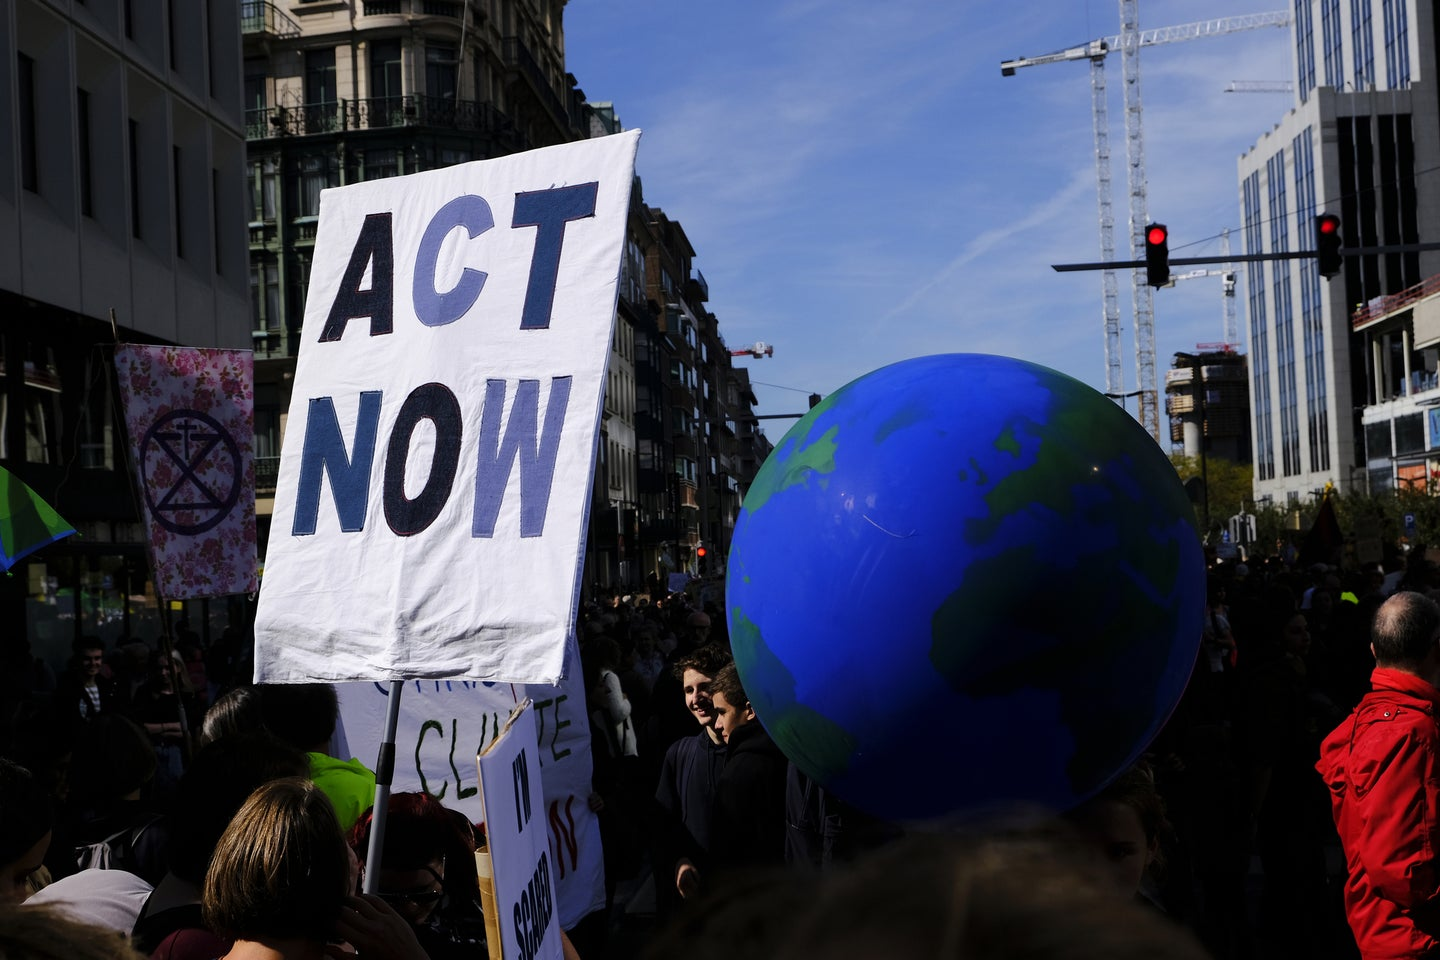 a large globe held up at a protest